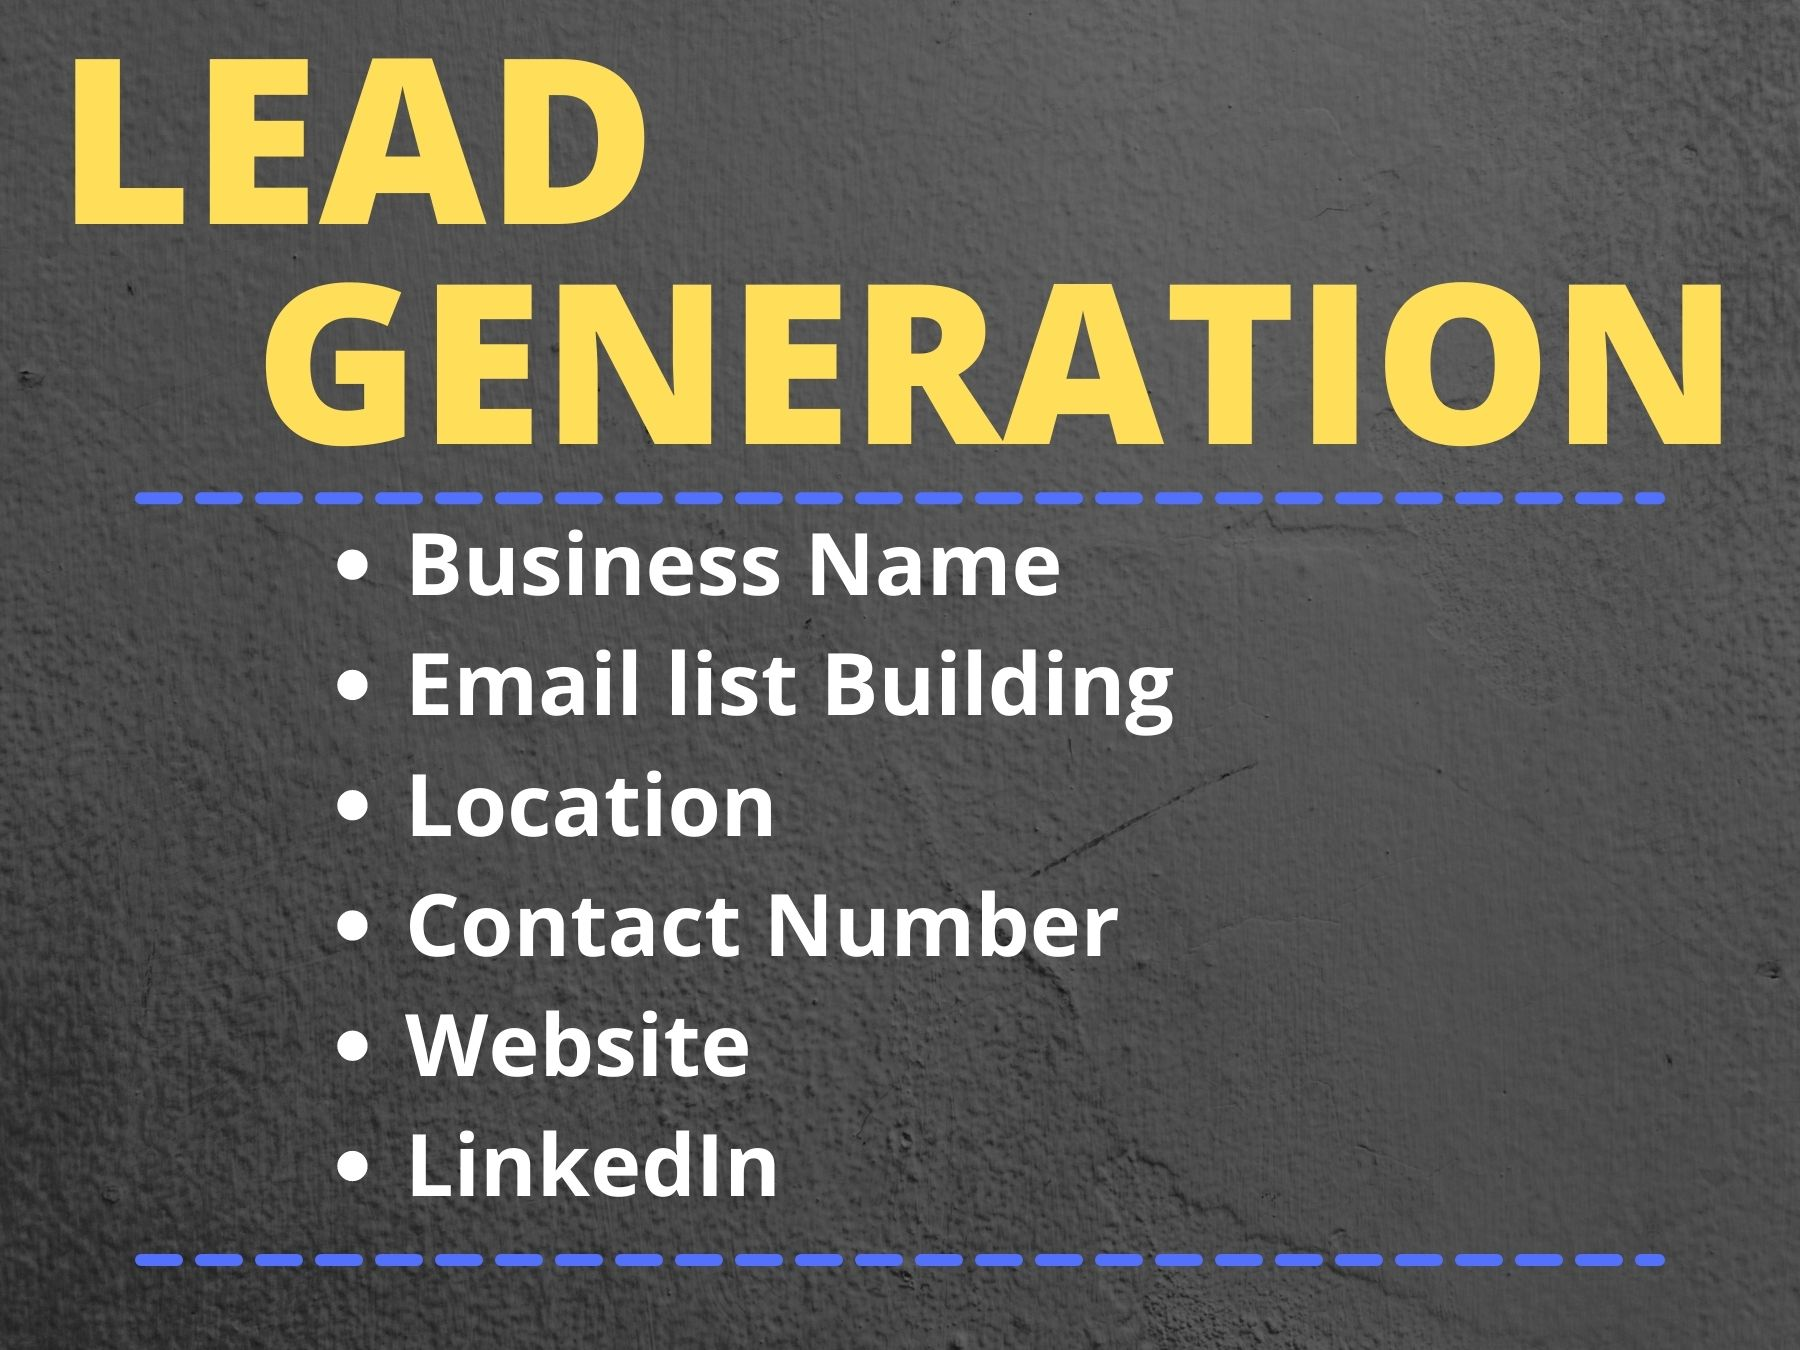 I will do b2b lead generation & provide 100 LinkedIn leads with valid email